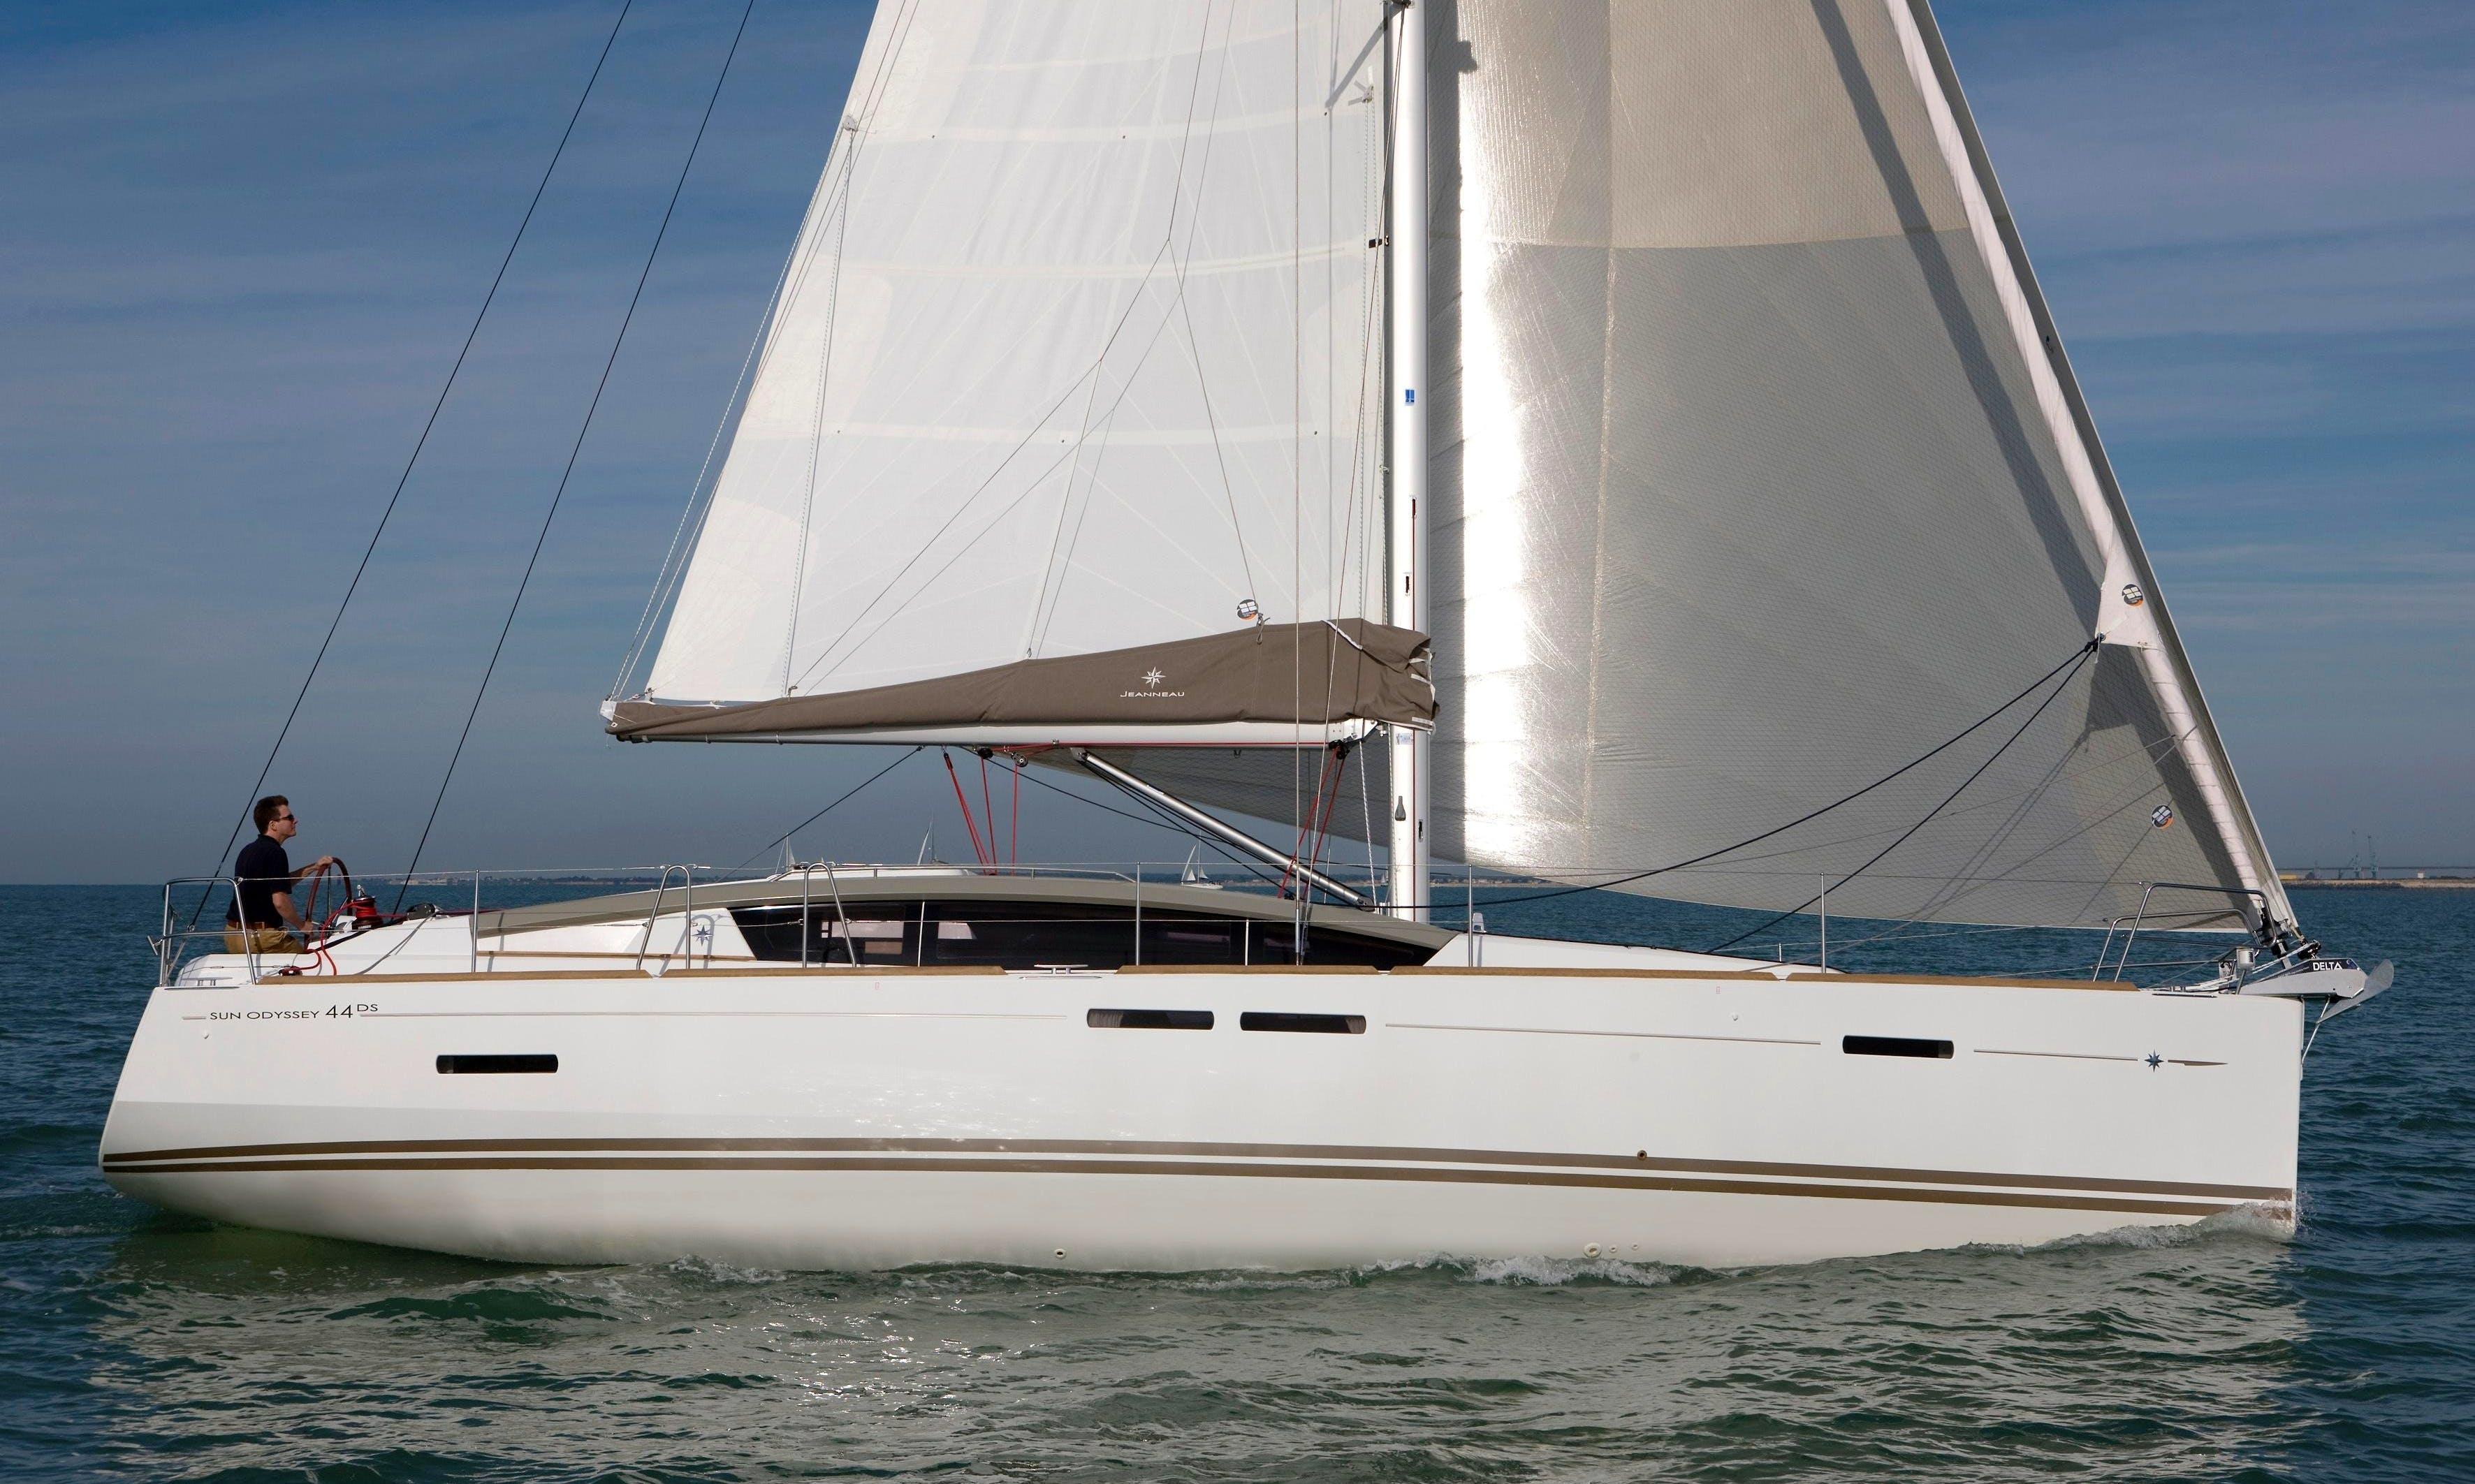 Jeanneau 44 Cruising Monohull for Charter with or without a Skipper in Loano, Liguria